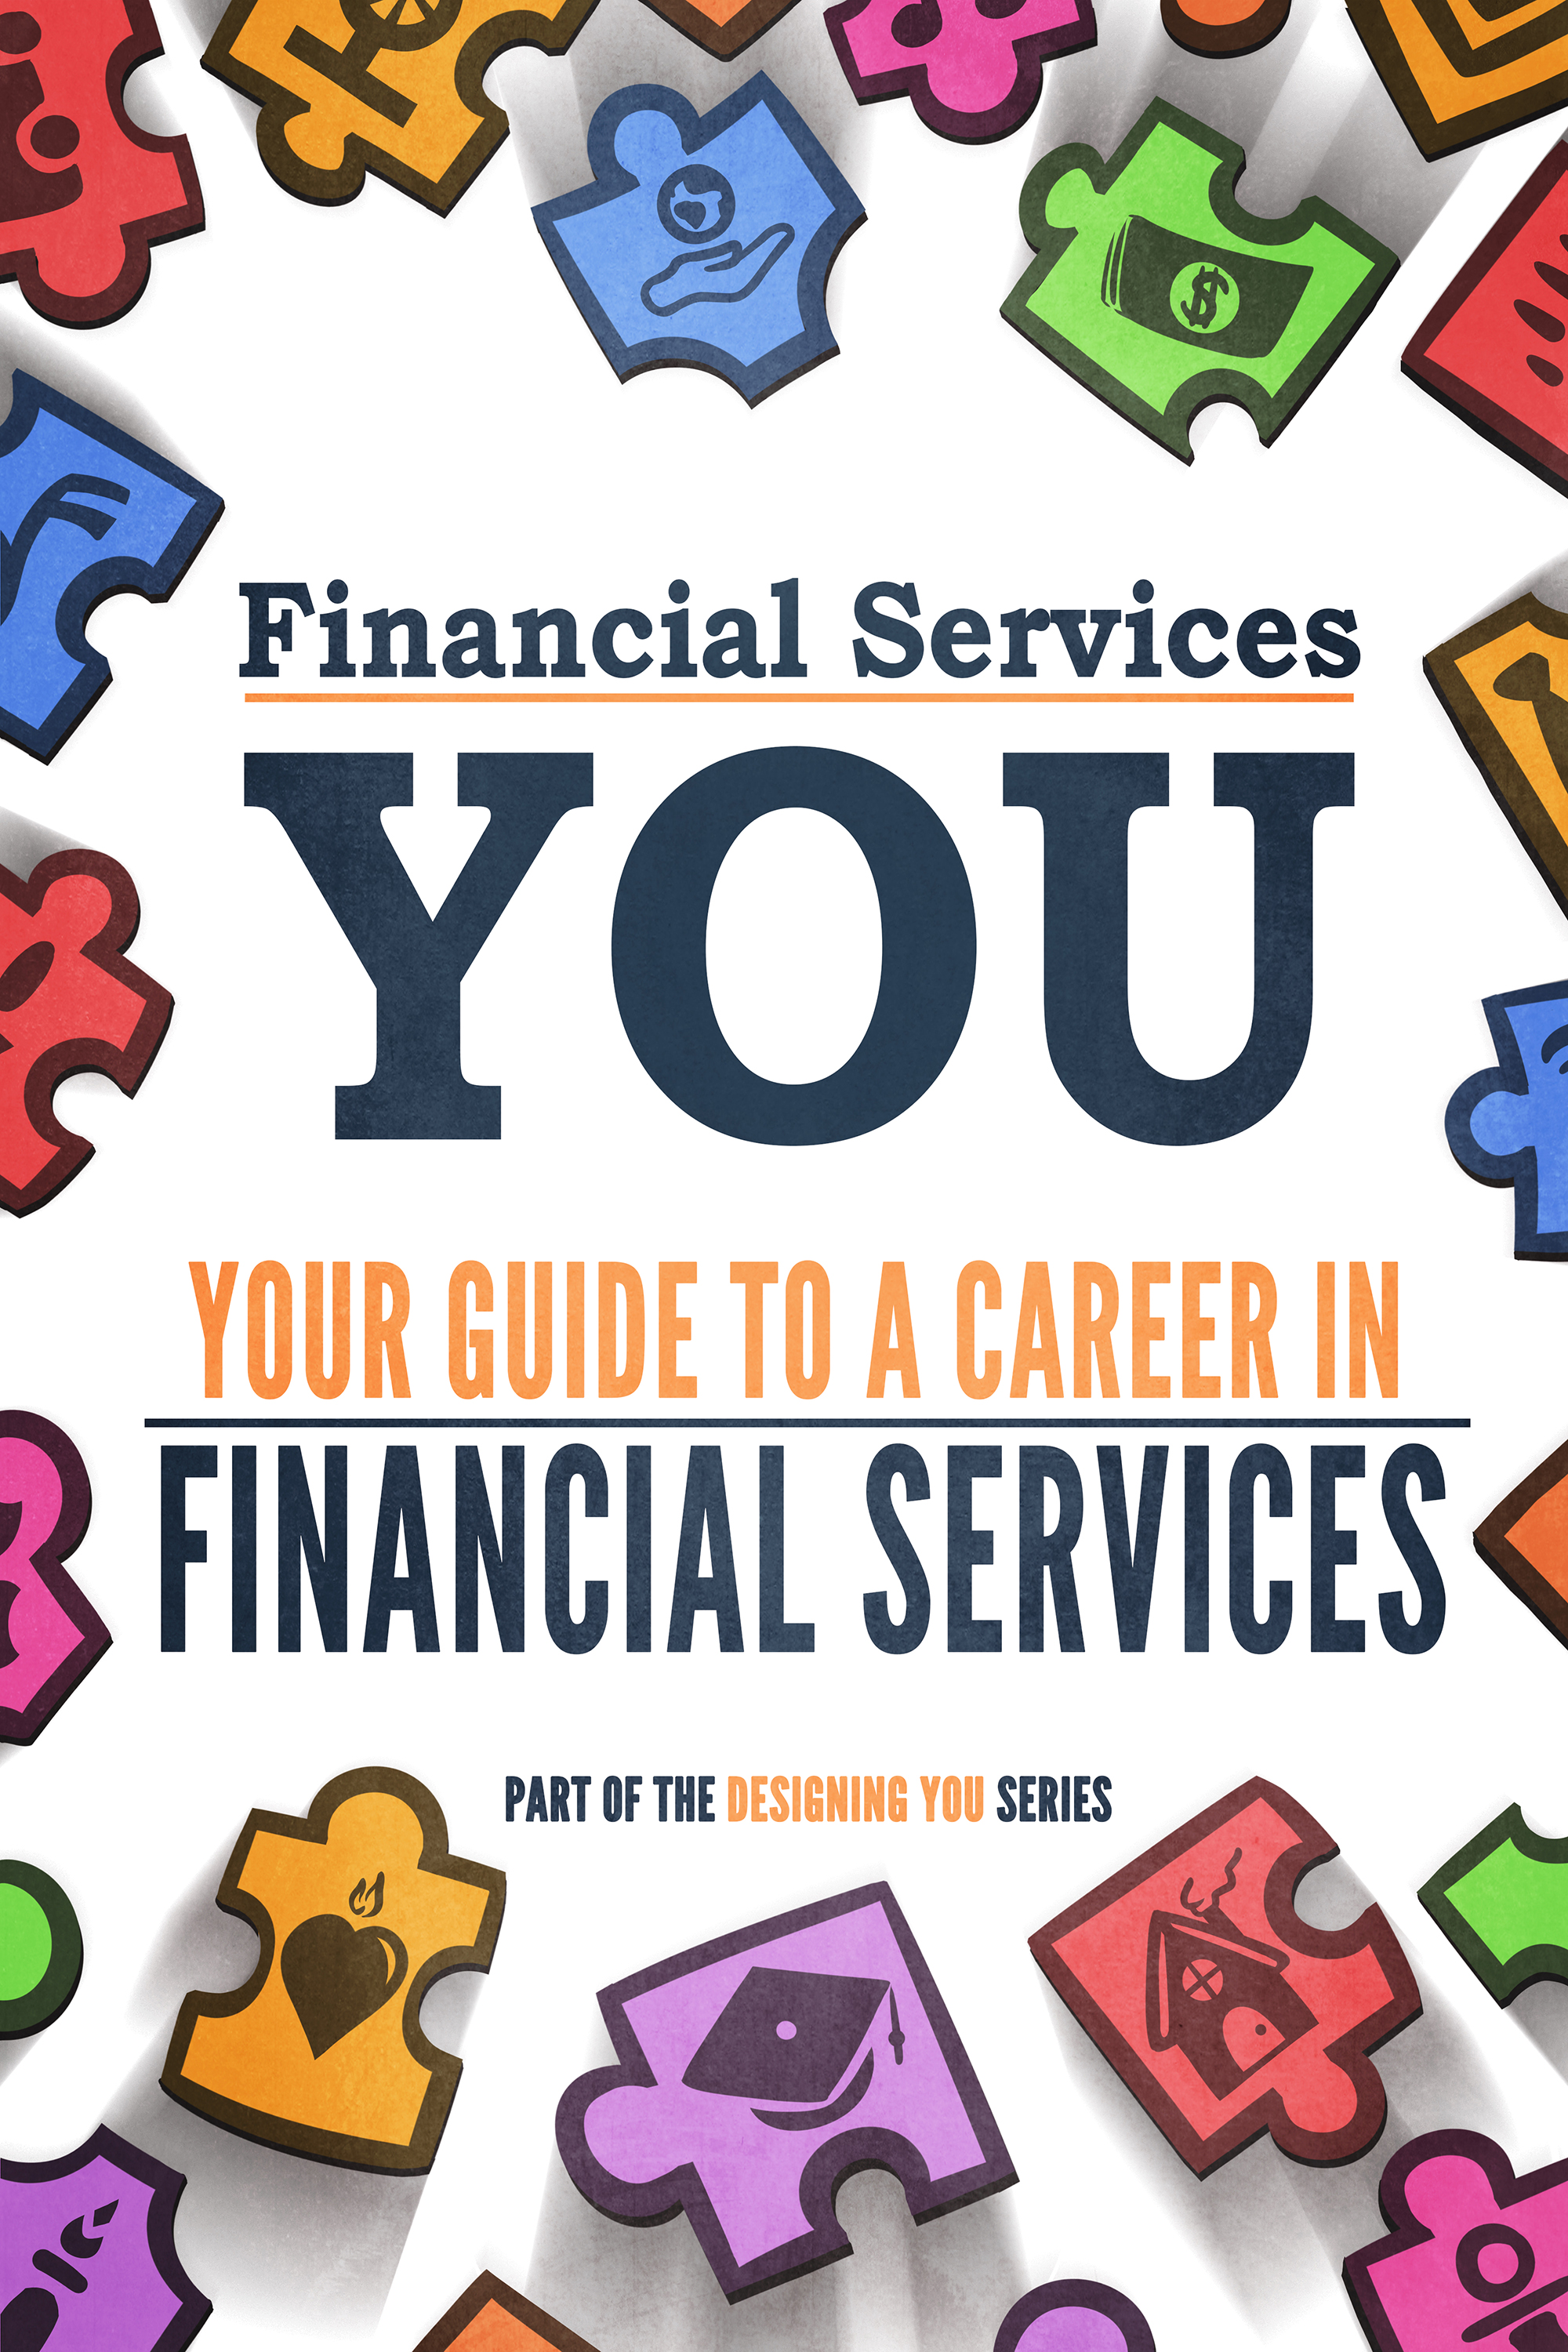 FINANCIALSERVICES_COVER_Small (1).jpg